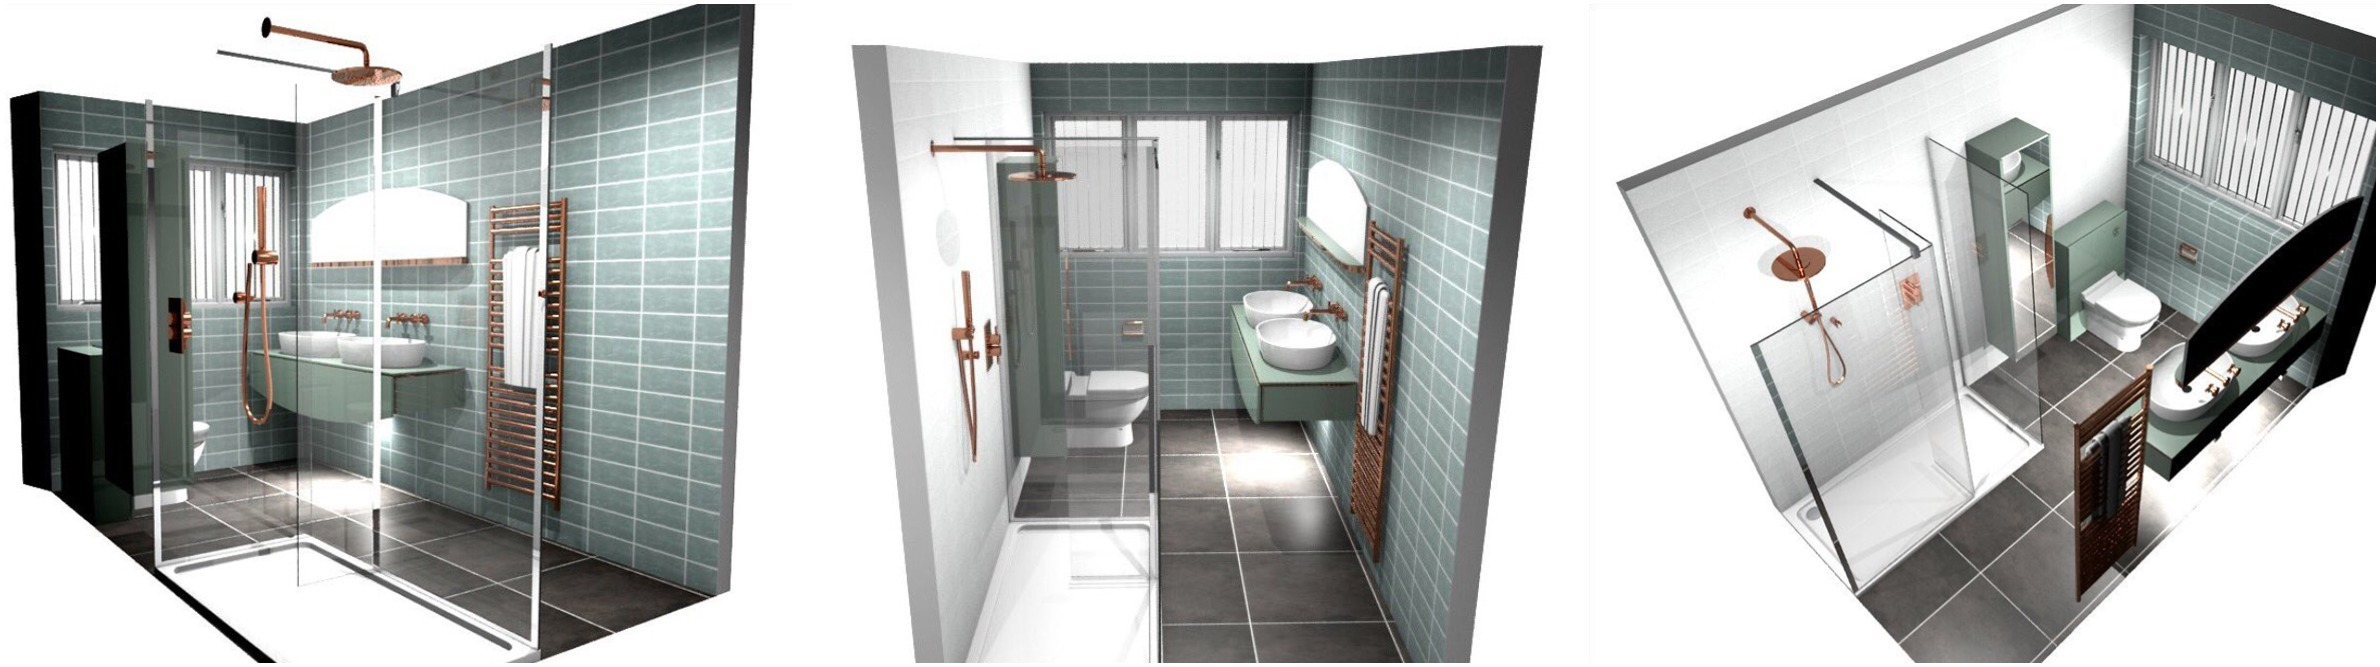 Nottingham bathroom design